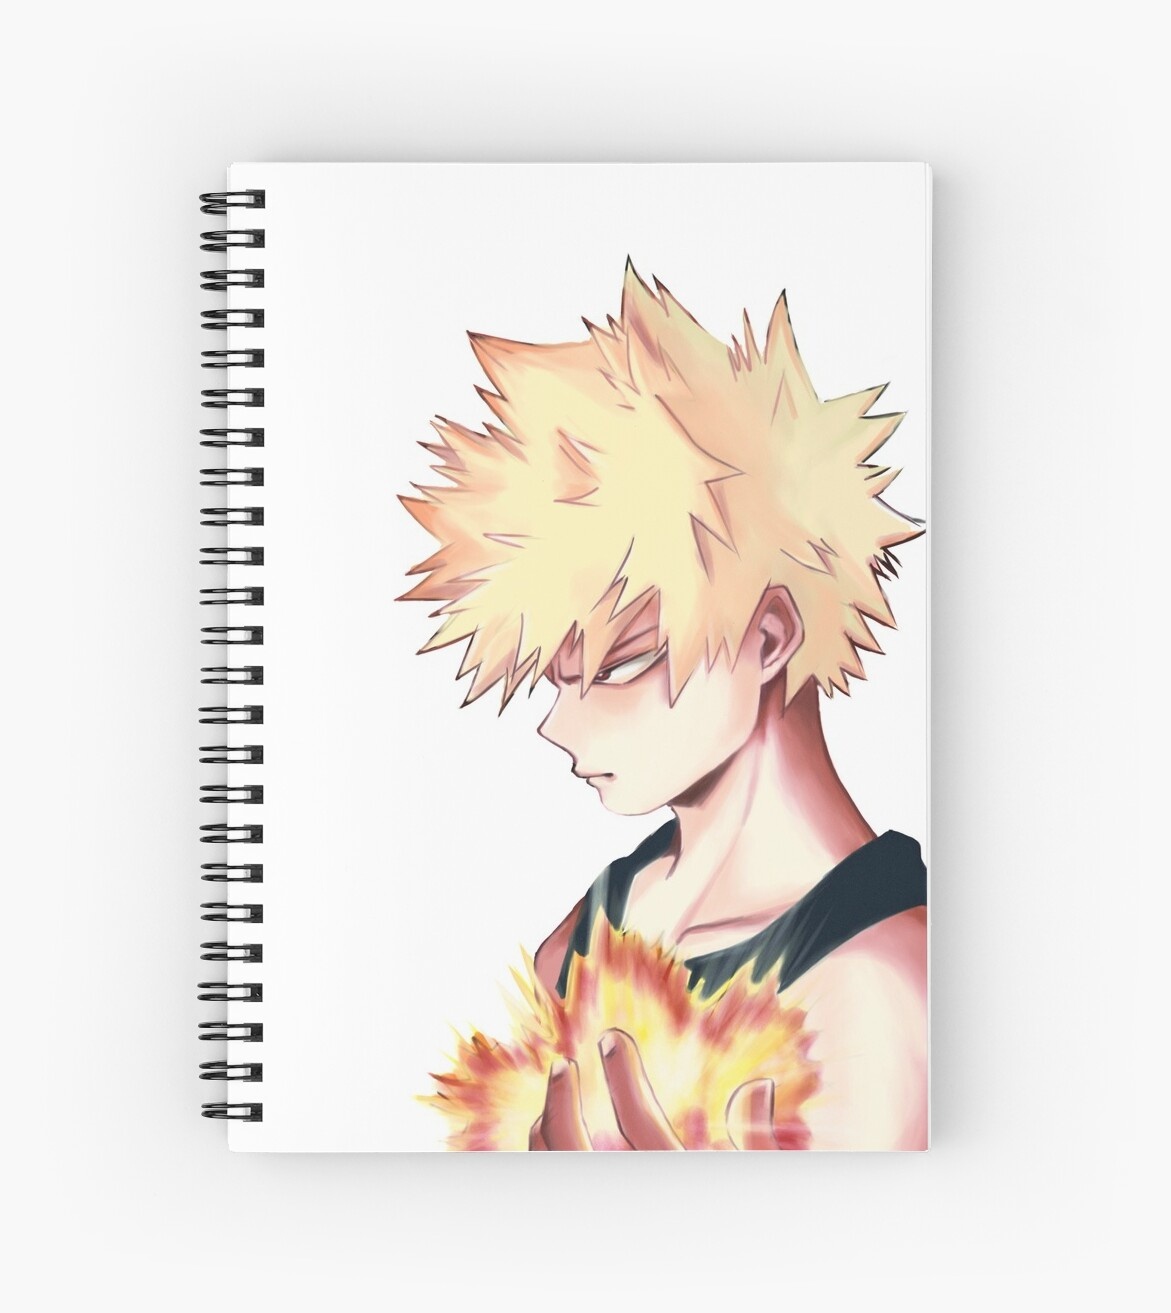 Bakugou by artloadrian